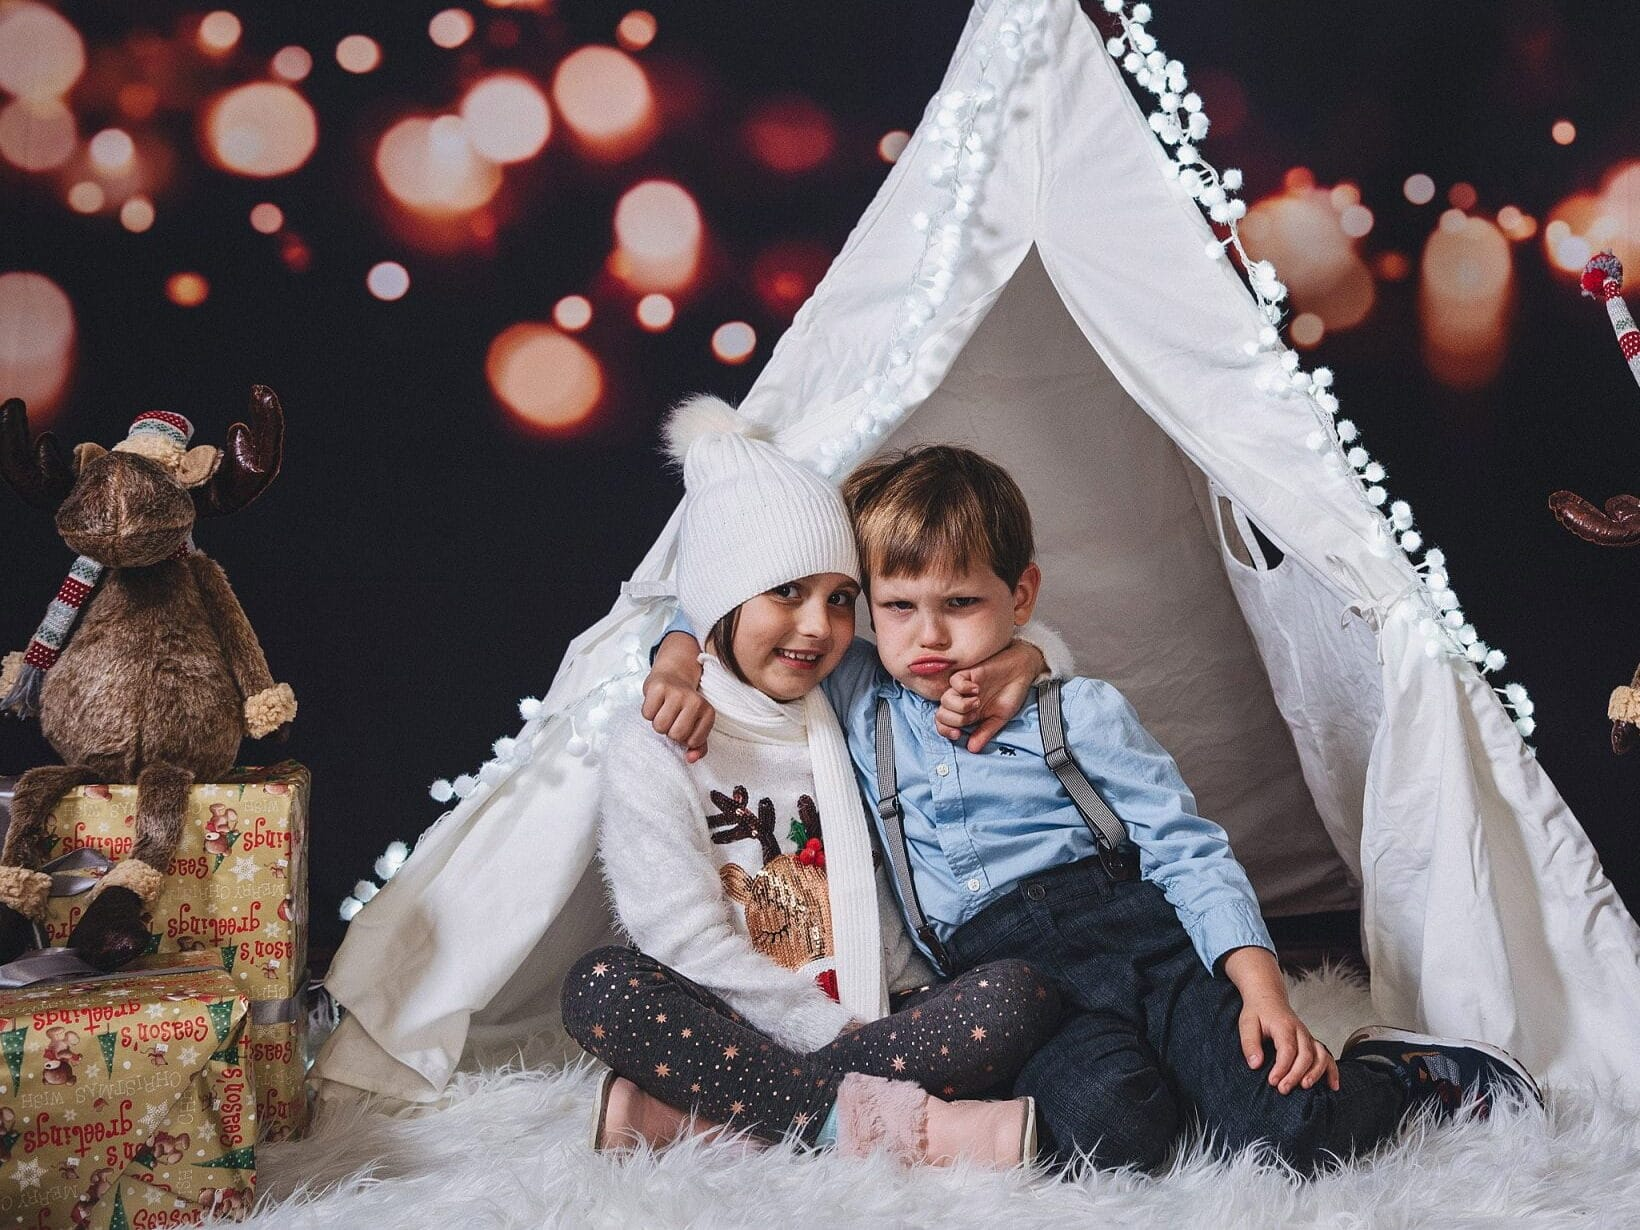 Family Christmas pictures that show two young children sitting in front of a tent | The Dating Divas